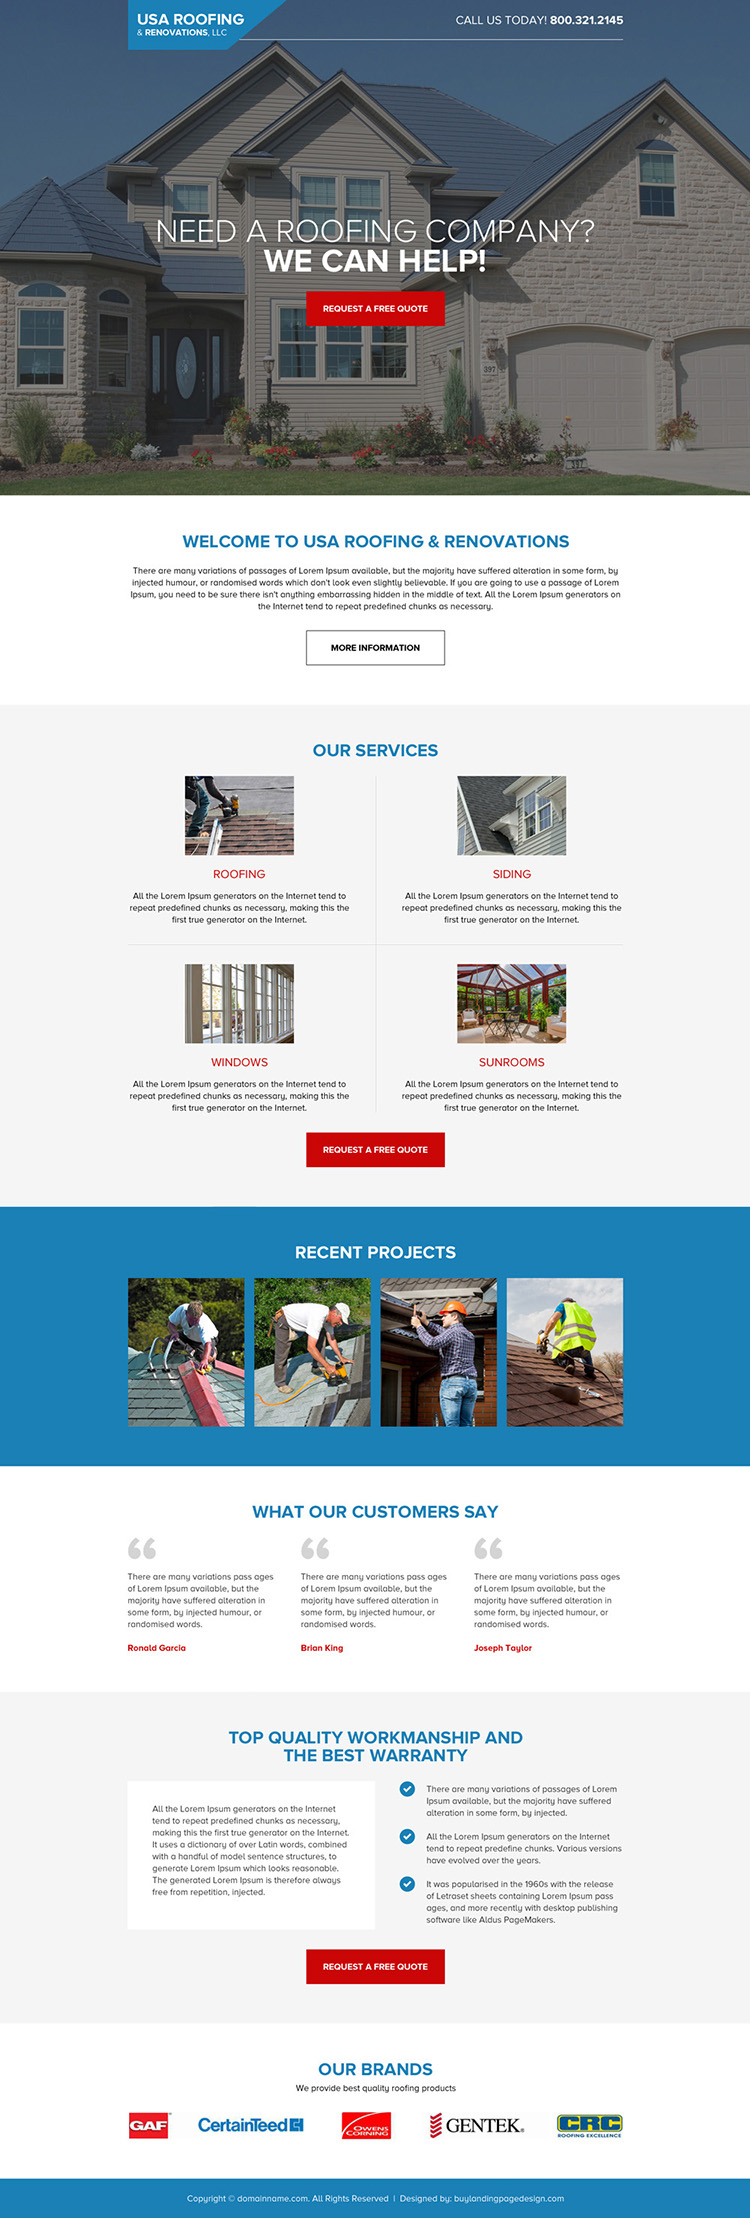 responsive roofing and renovation service landing page design